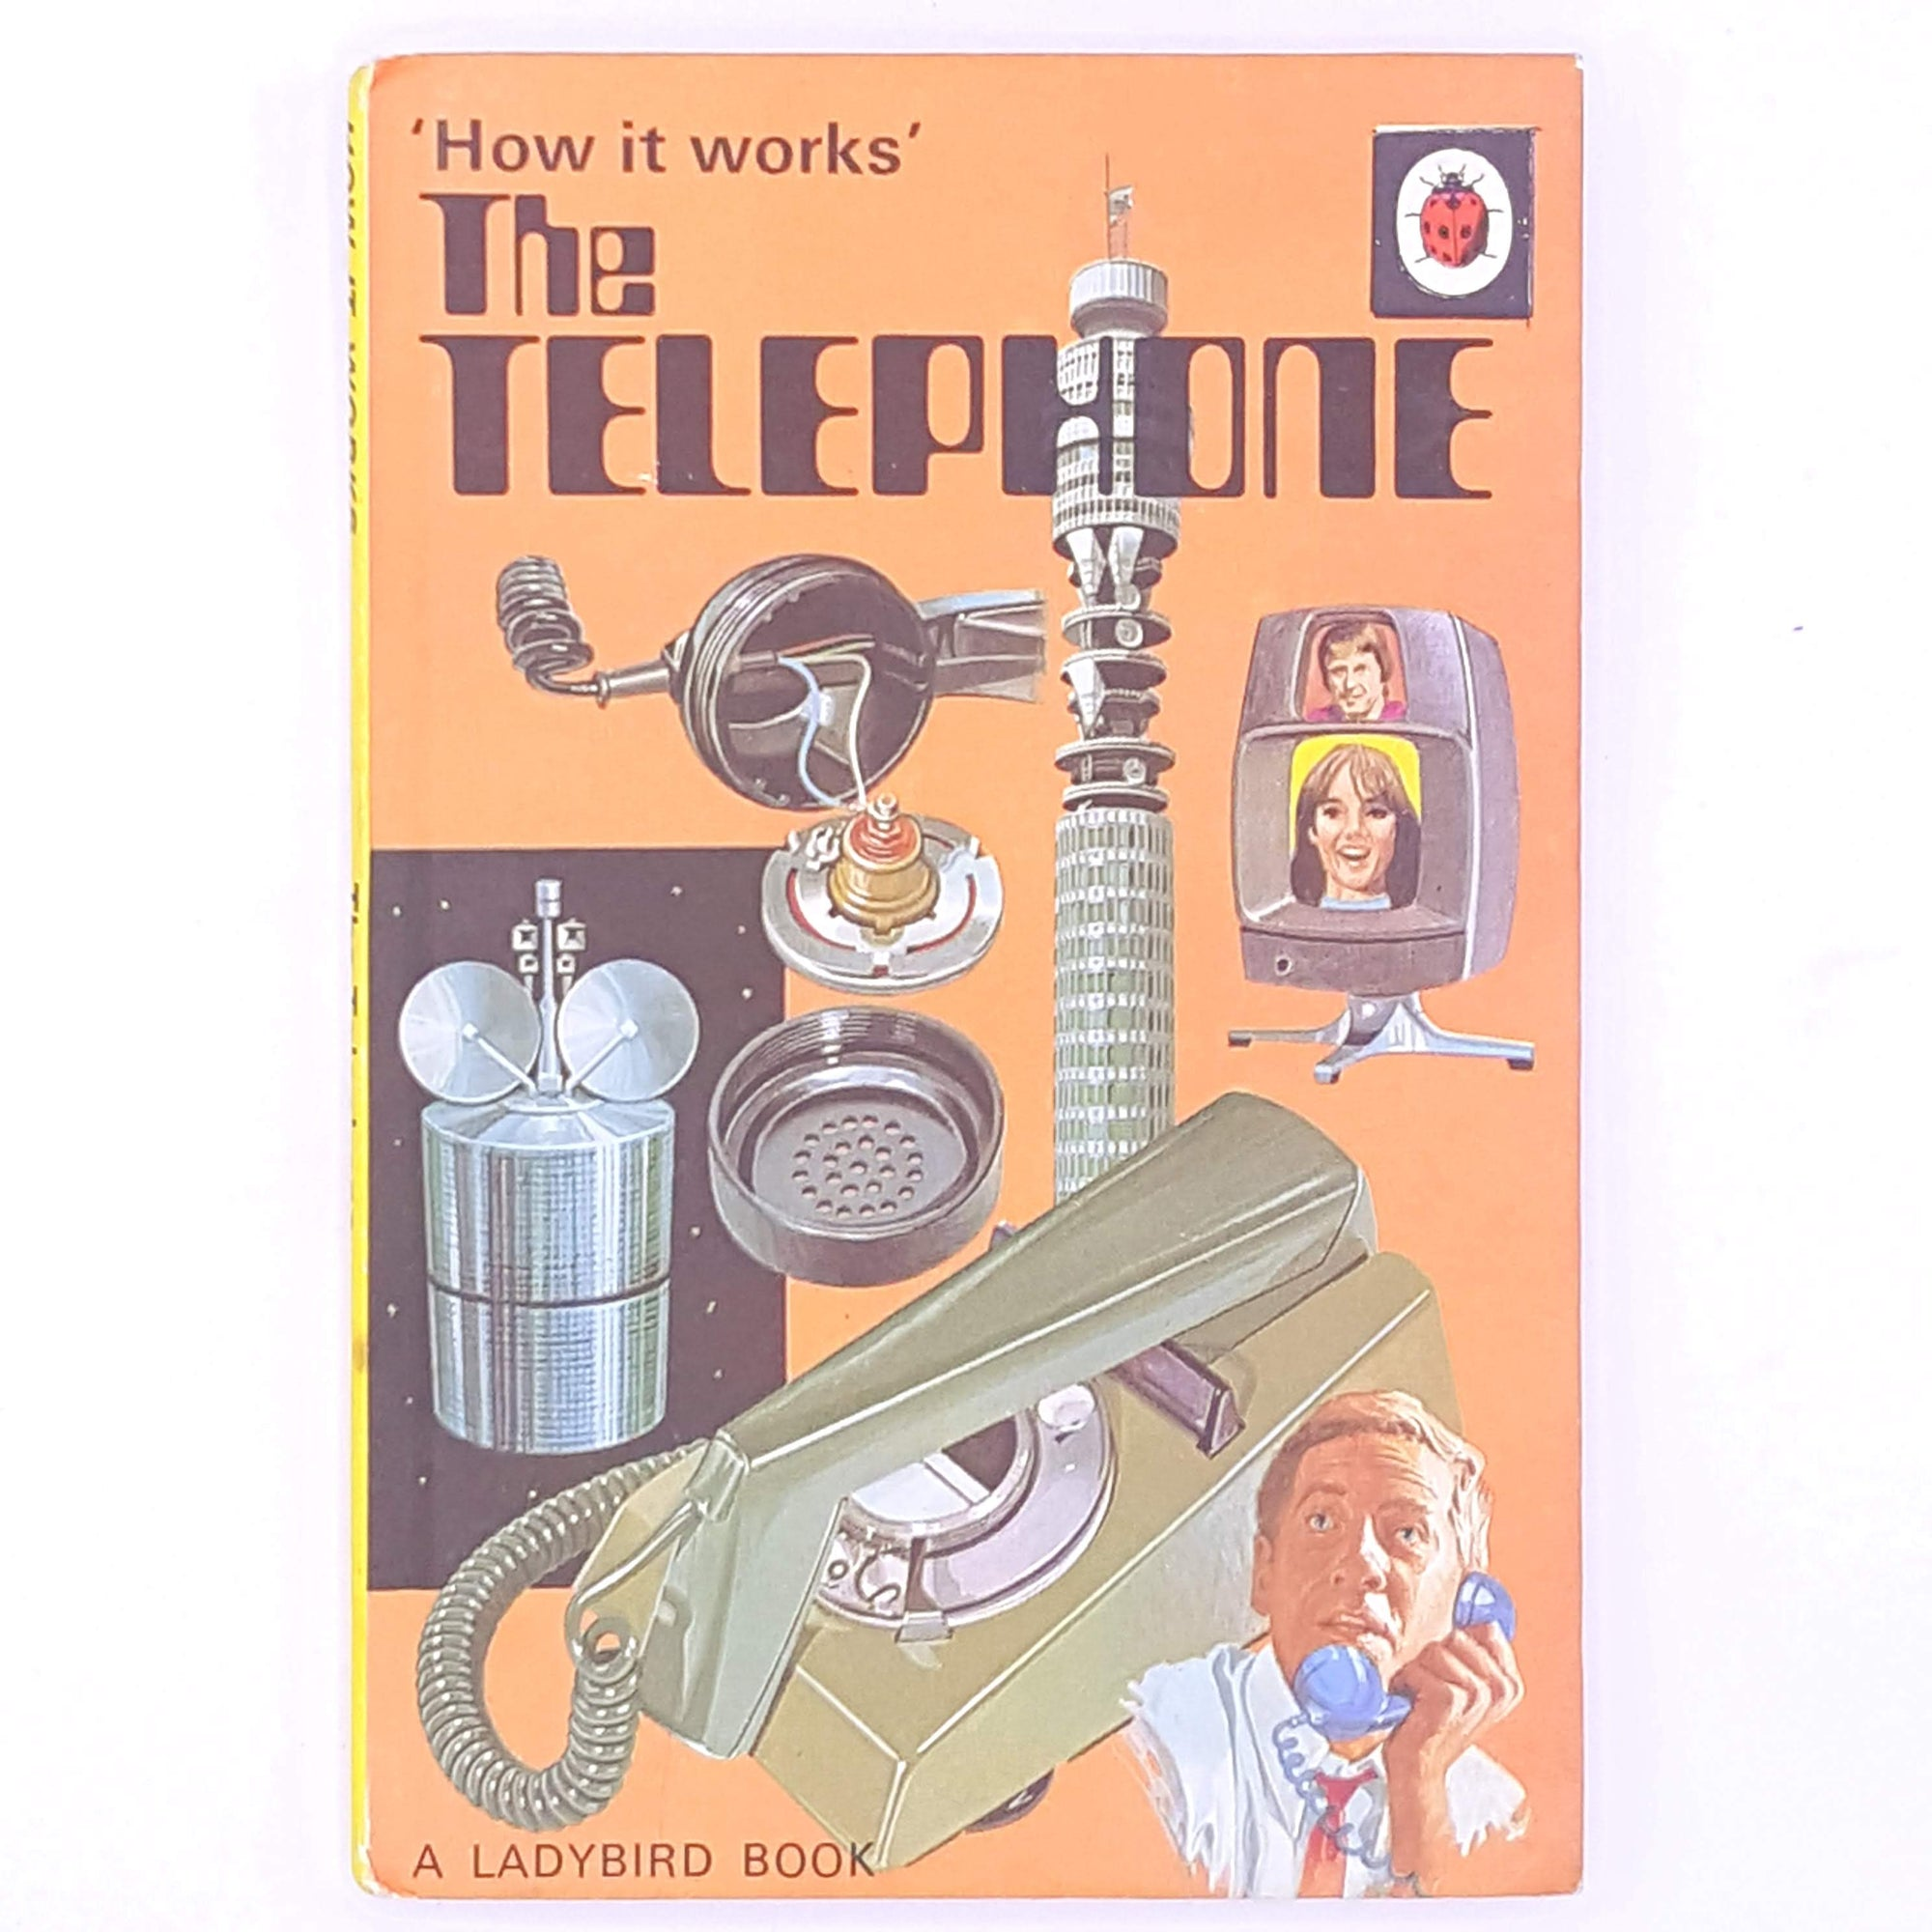 classic-how-it-works-series-old-the-telephone-country-house-library-books-ladybird-childrens-stories-antique-decorative-thrift-vintage-christmas-gifts-for-kids-patterned-